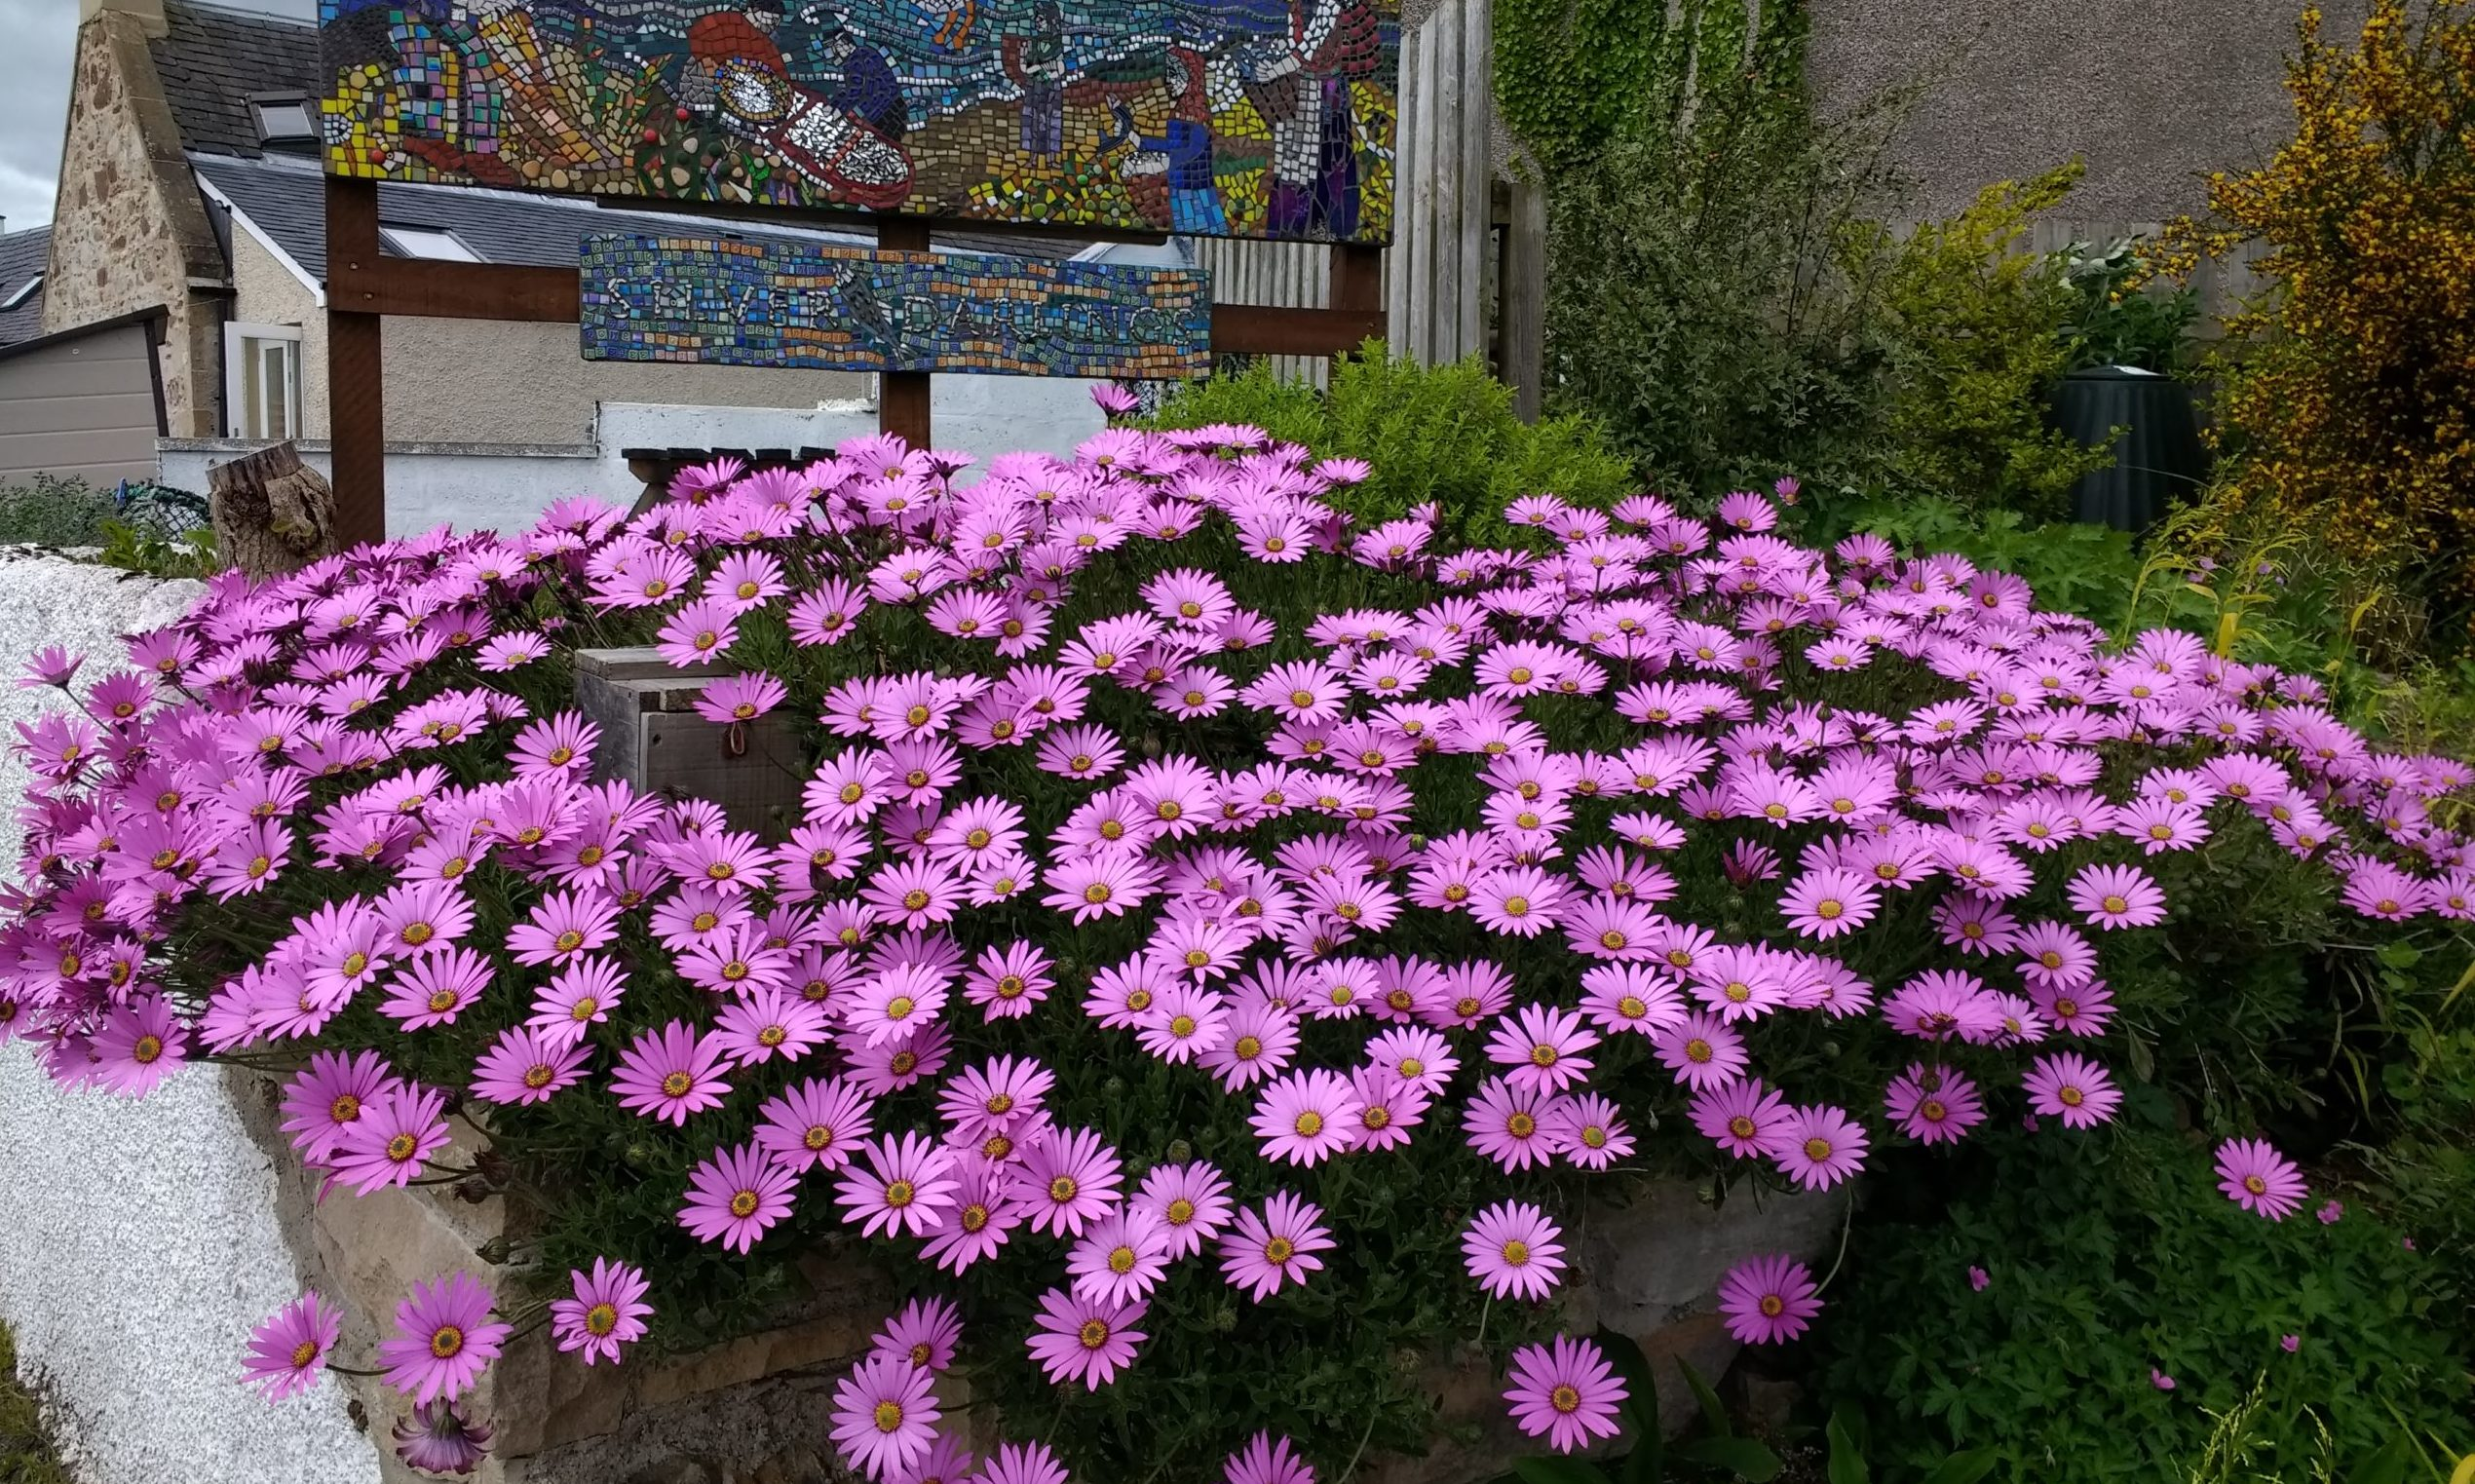 General photograph of flowers in a garden.